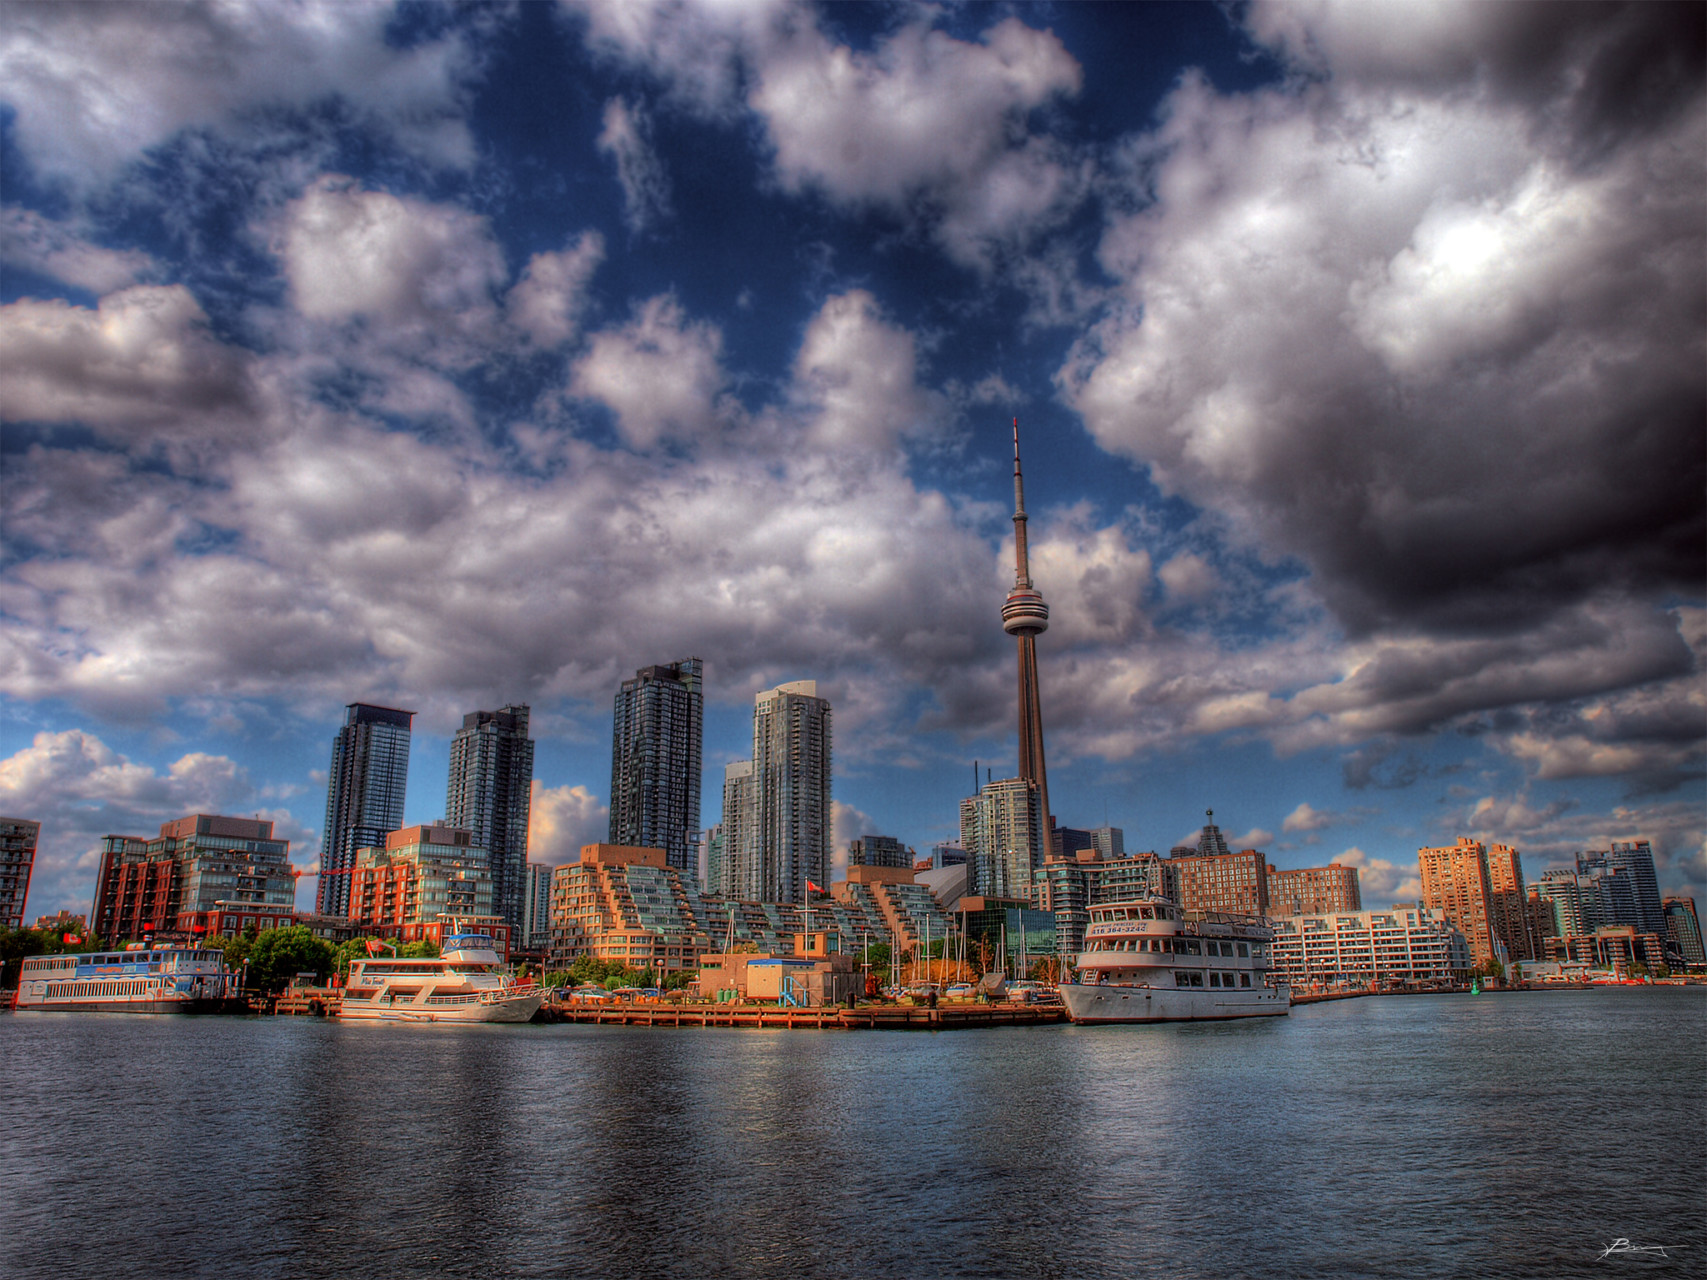 Clouds moving over Toronto